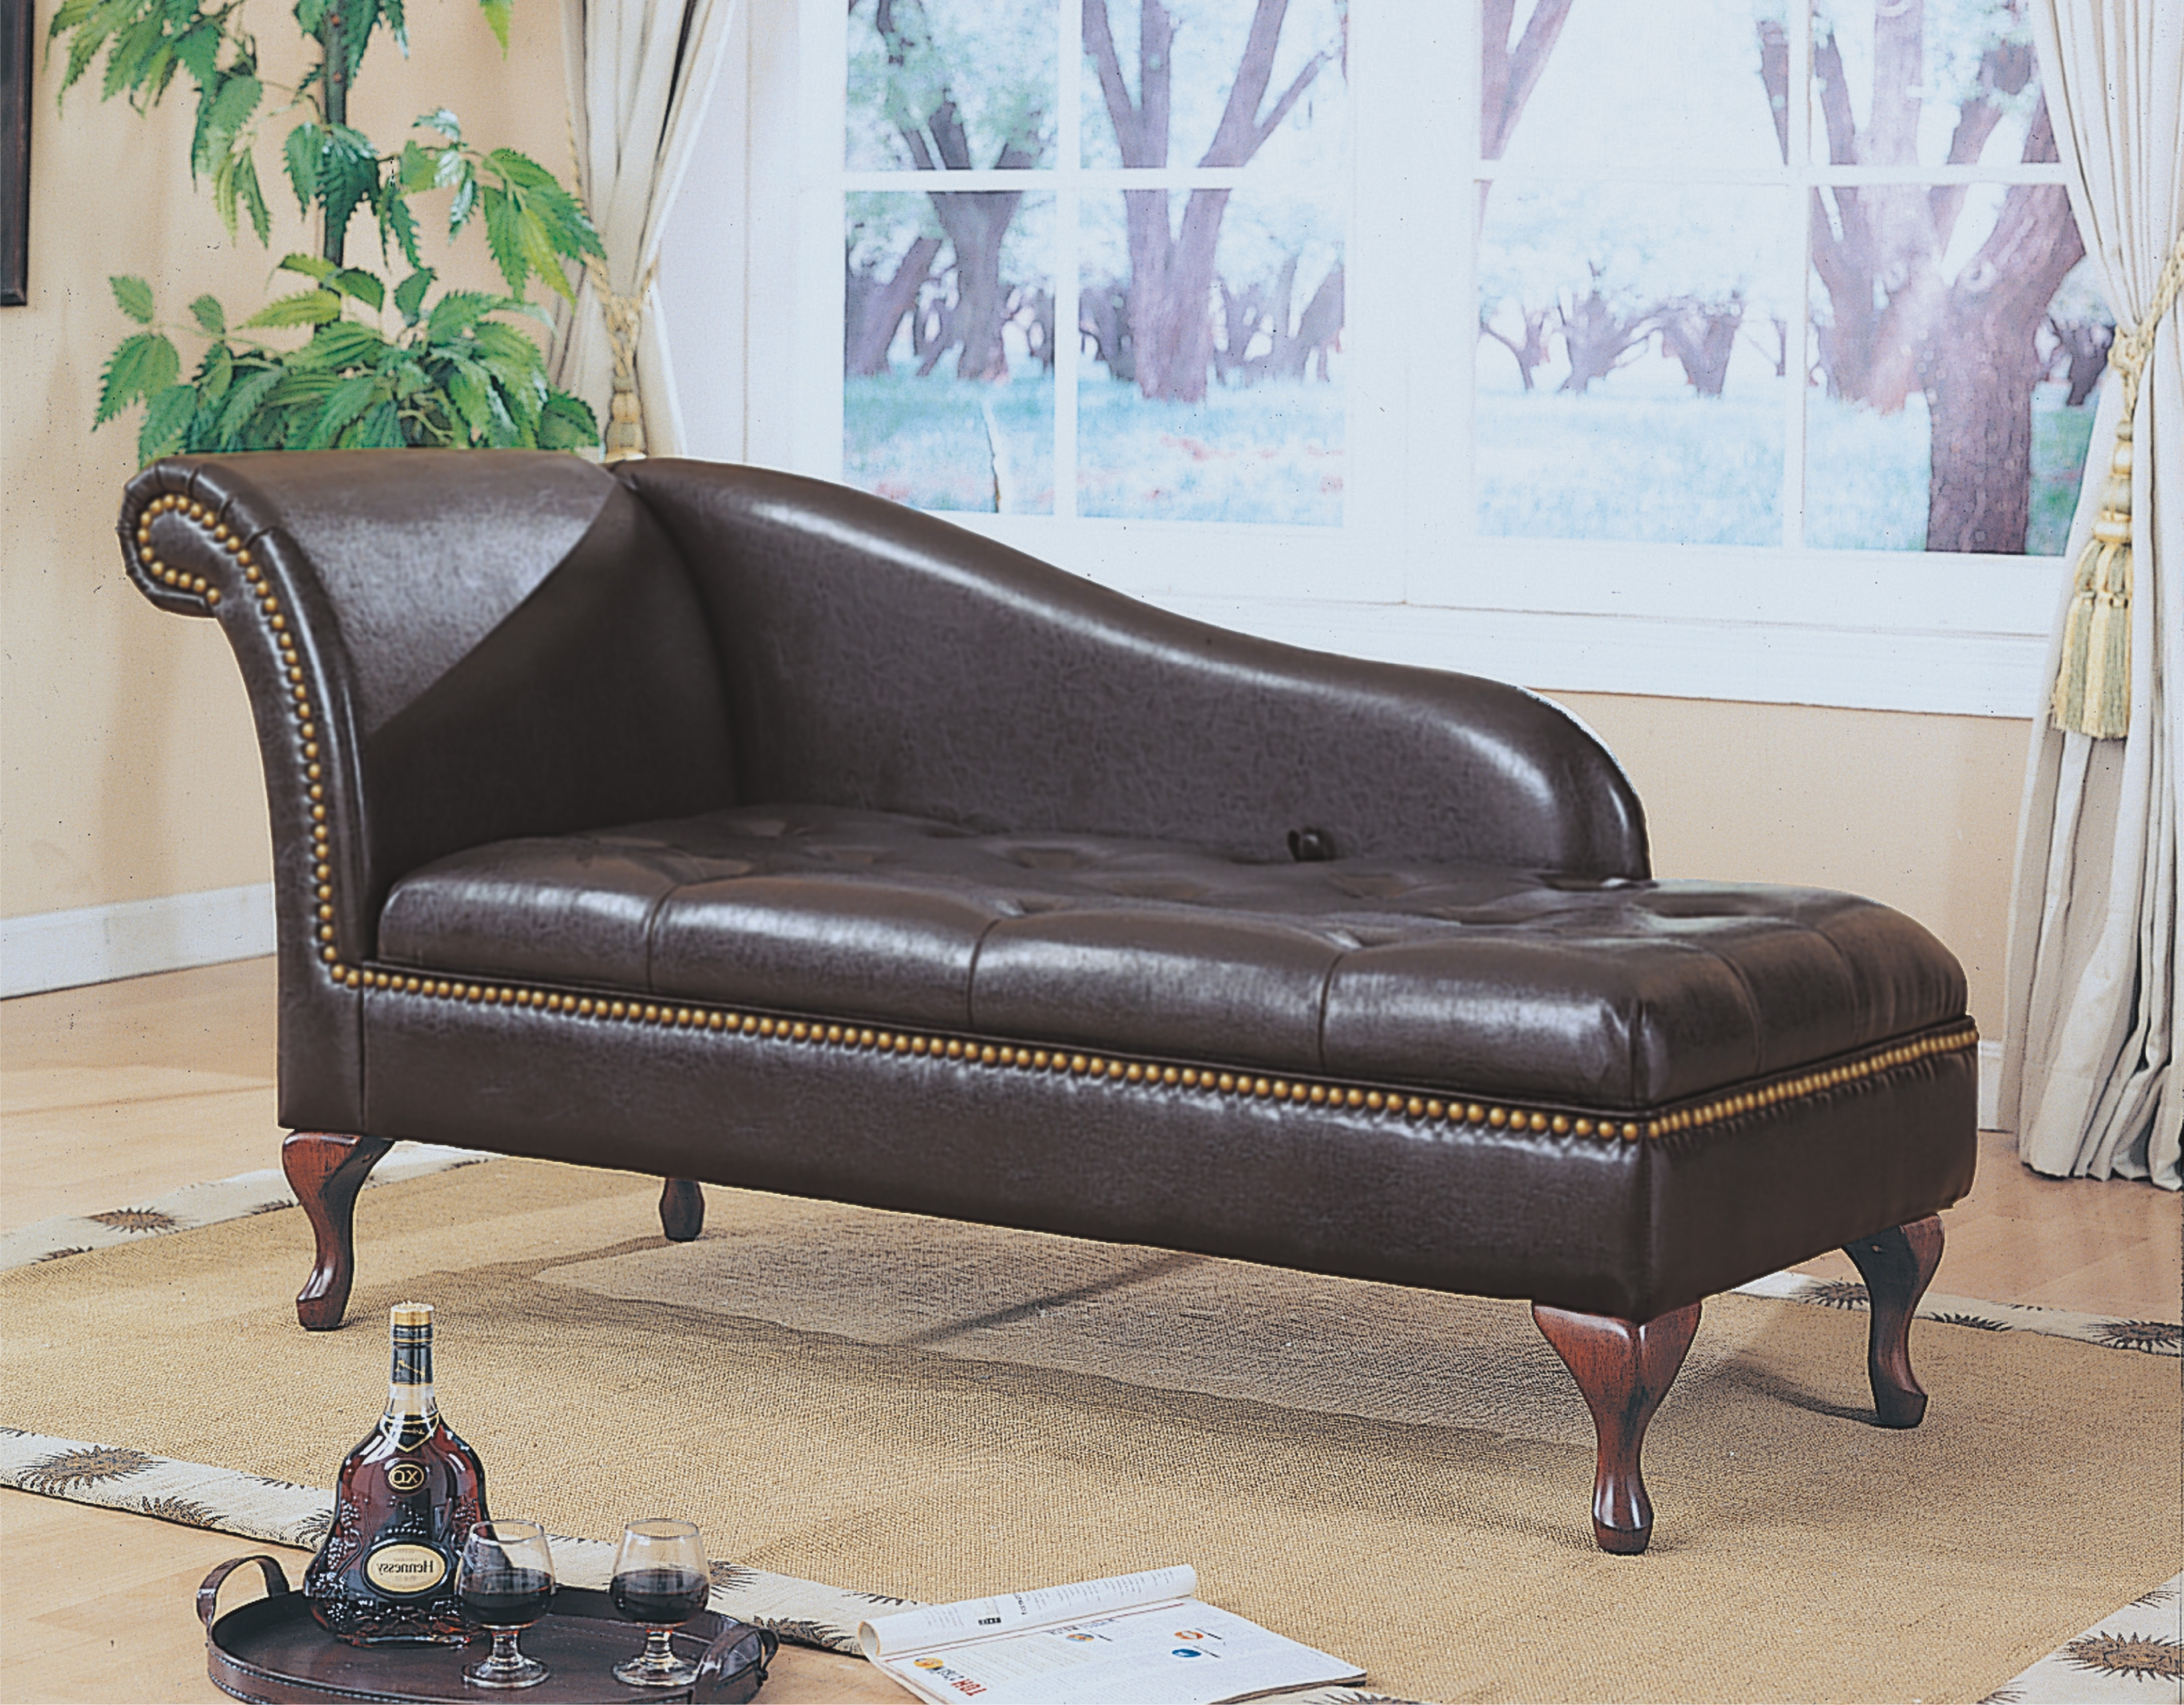 Popular Dark Brown Leather Sofa Chaise Lounge With Curving Headboard And In Chaise Lounge Chairs For Small Spaces (View 11 of 15)